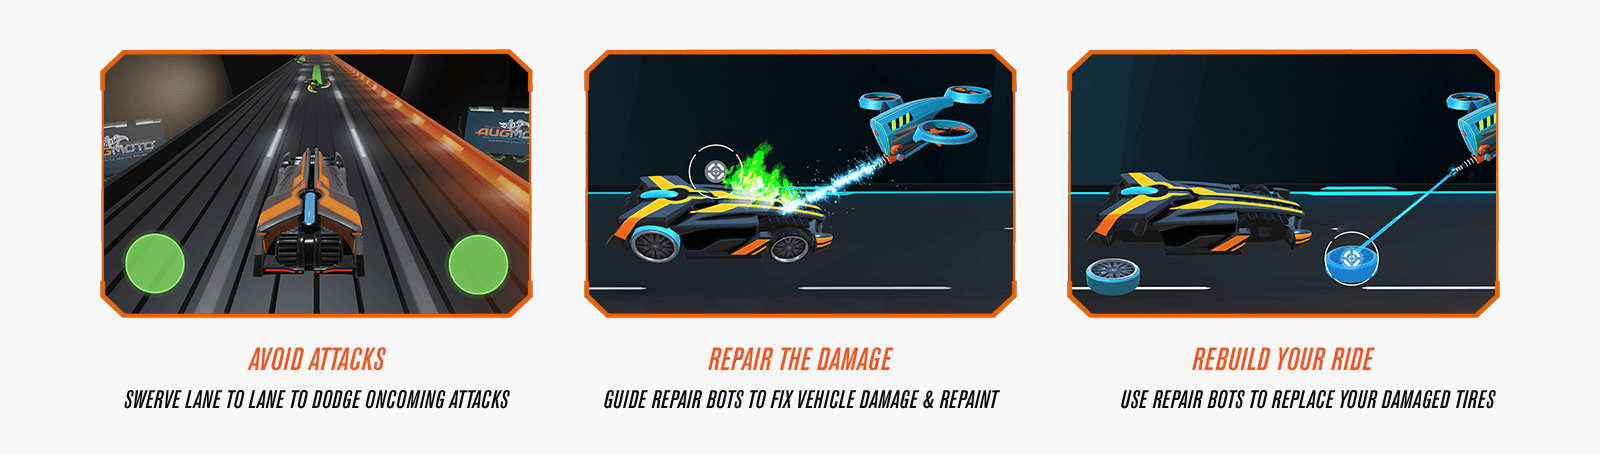 Avoid Attacks - Repair The Damage - Rebuild the Ride